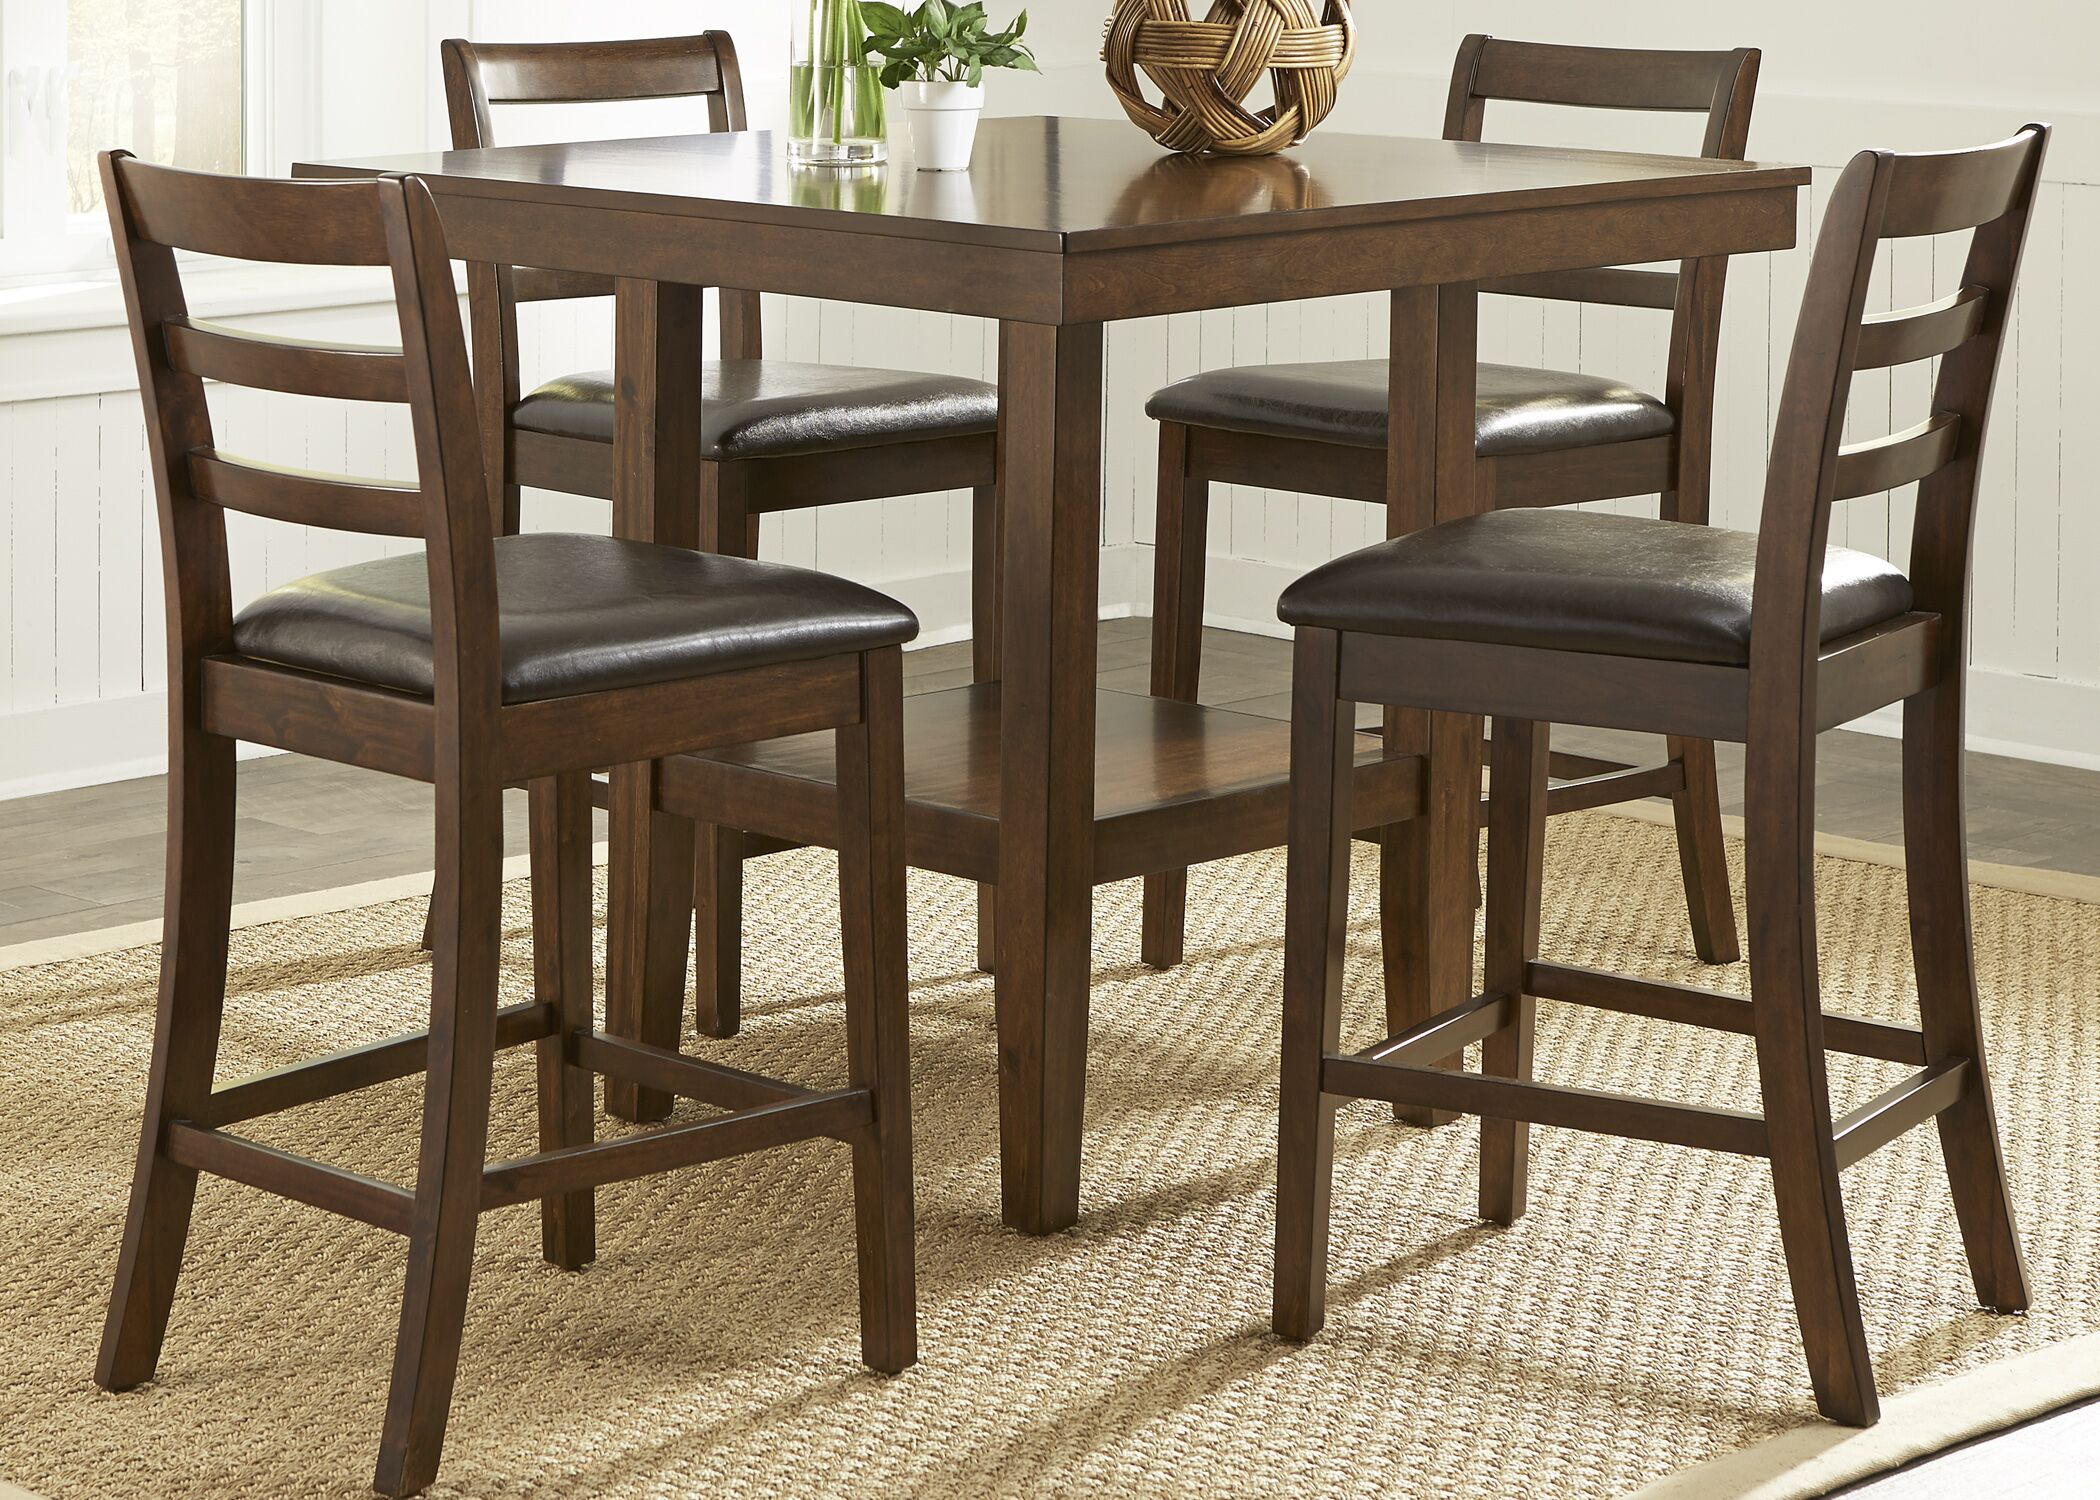 Dining Table Sets Gosselin Contemporary 5 Piece Counter Height Dining Set